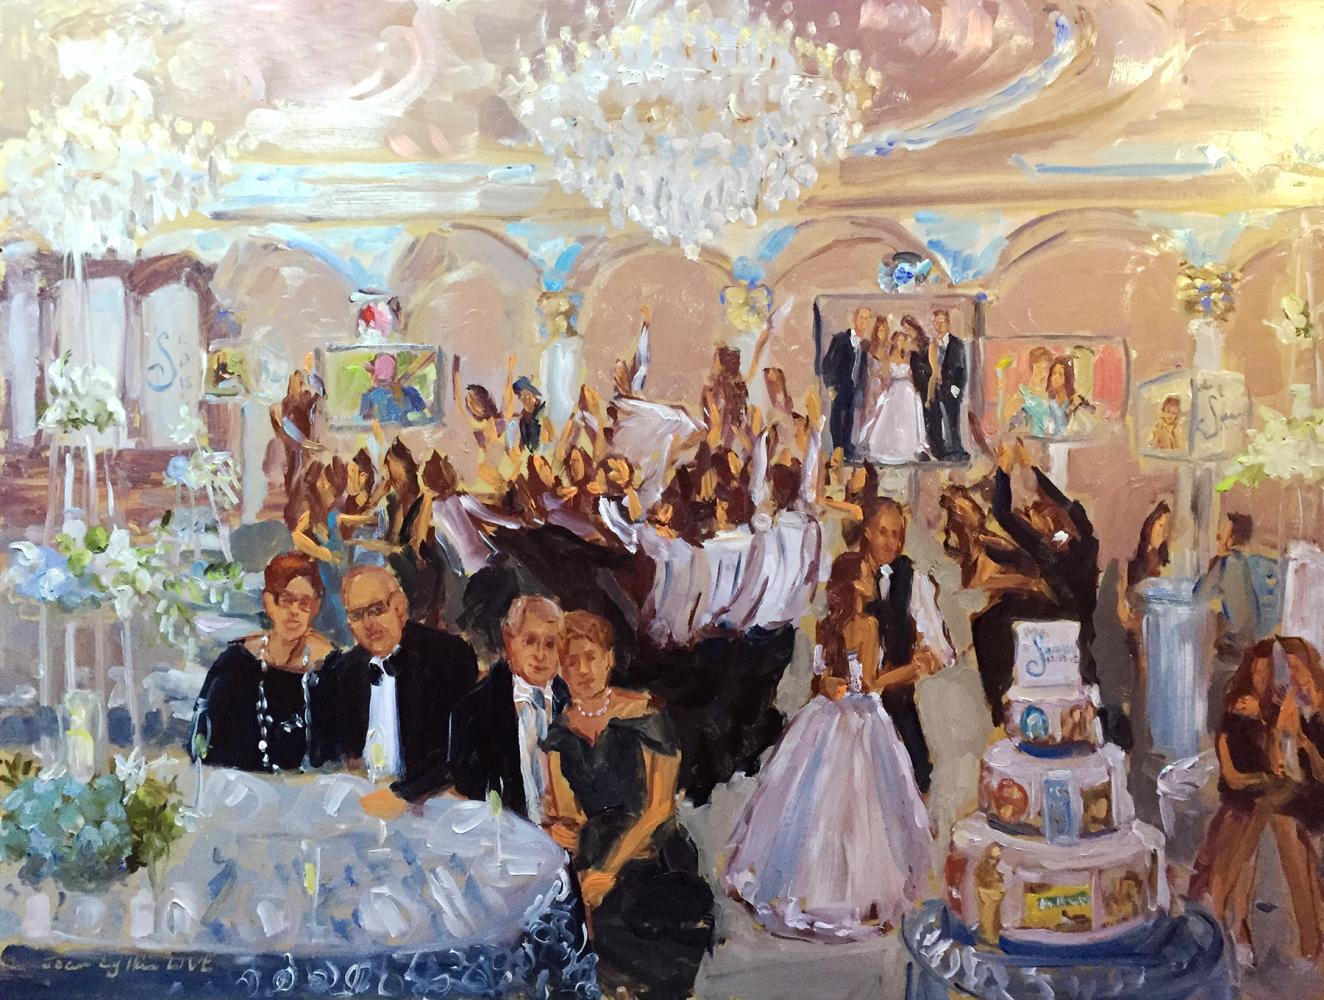 Live event painting, my third Mitzvah painting for this family